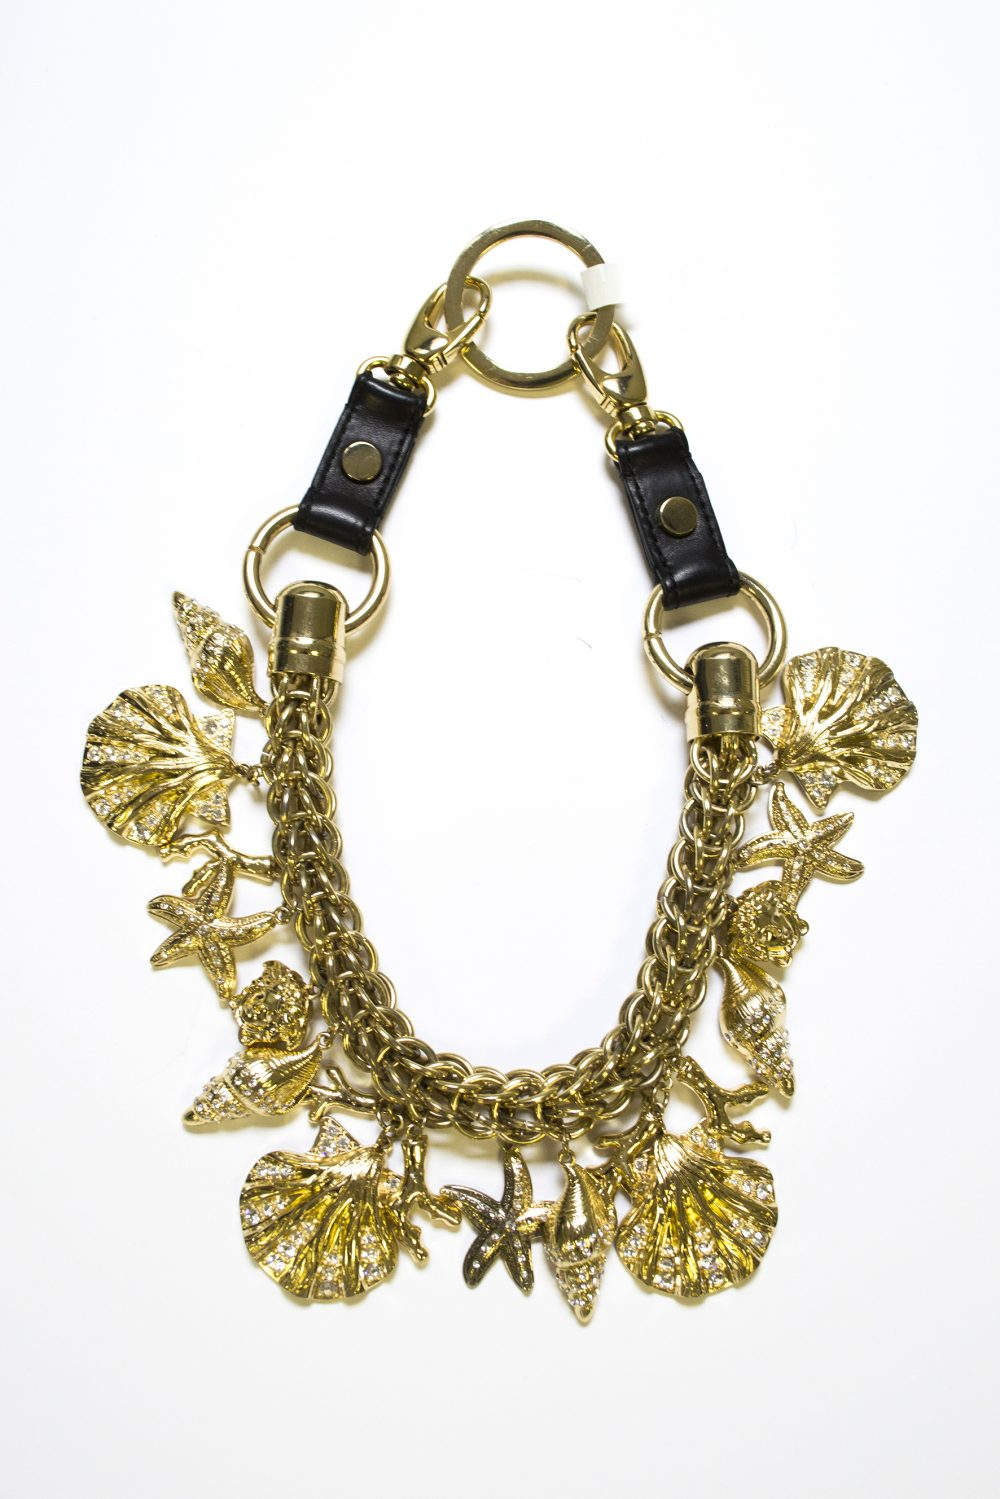 A necklace by Versace from 1992